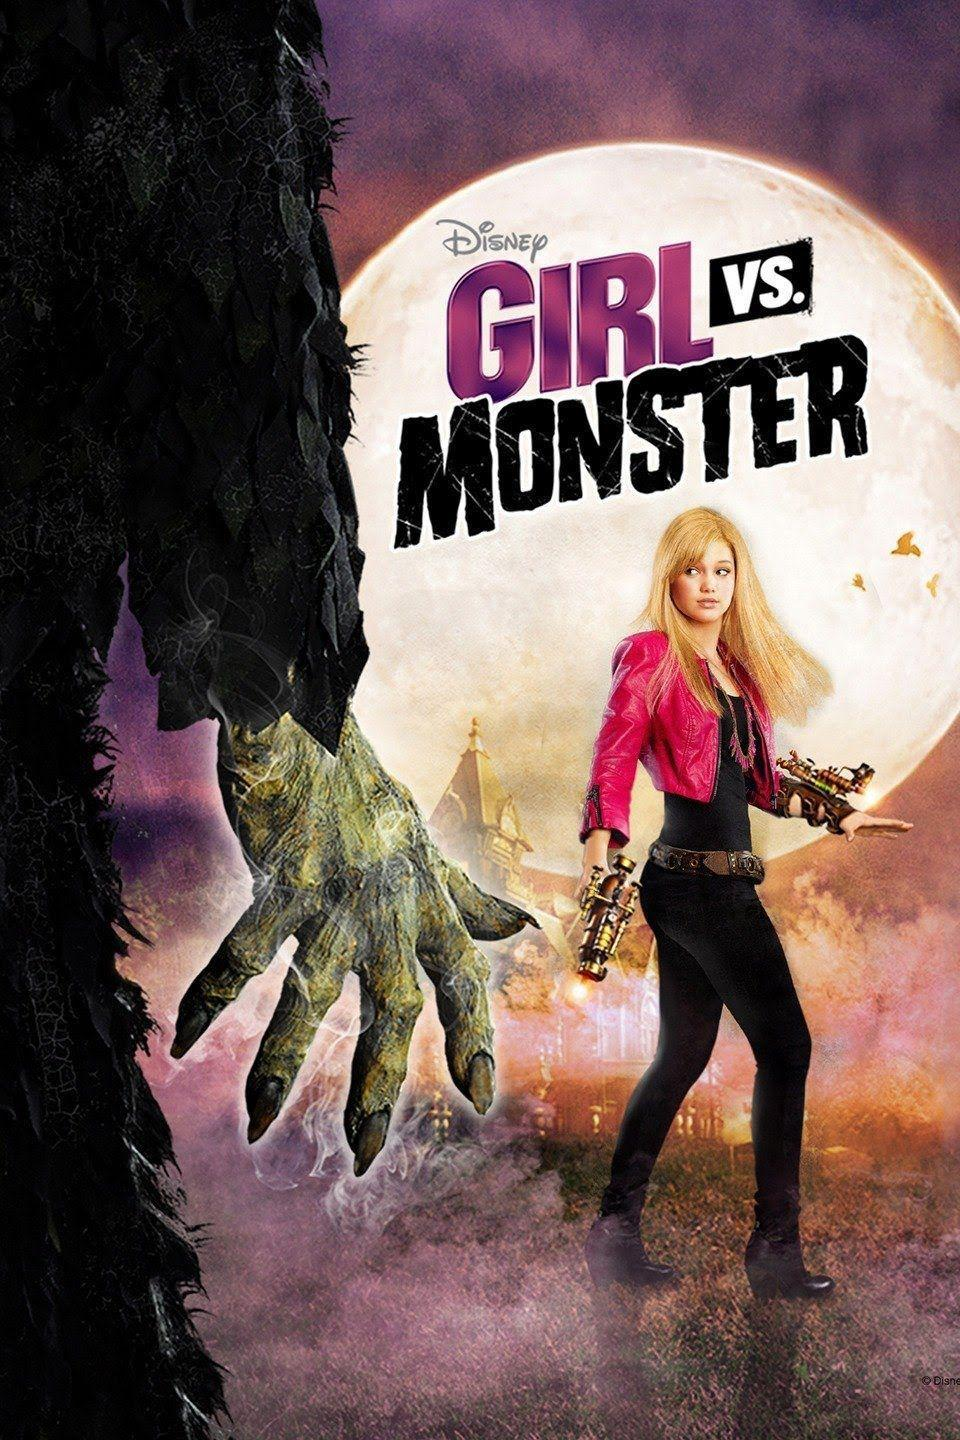 """<p>A tween (<strong>Olivia Holt</strong>) discovers that her parents are monster hunters, but when she accidentally releases a monster named Deimata, she must stop it before the monster hunts her parents and possesses Skylar's soul.</p><p><a class=""""link rapid-noclick-resp"""" href=""""https://go.redirectingat.com?id=74968X1596630&url=https%3A%2F%2Fwww.disneyplus.com%2Fmovies%2Fgirl-vs-monster%2F72ukYPILTnHp&sref=https%3A%2F%2Fwww.goodhousekeeping.com%2Flife%2Fentertainment%2Fg33651563%2Fdisney-halloween-movies%2F"""" rel=""""nofollow noopener"""" target=""""_blank"""" data-ylk=""""slk:WATCH NOW"""">WATCH NOW</a></p>"""